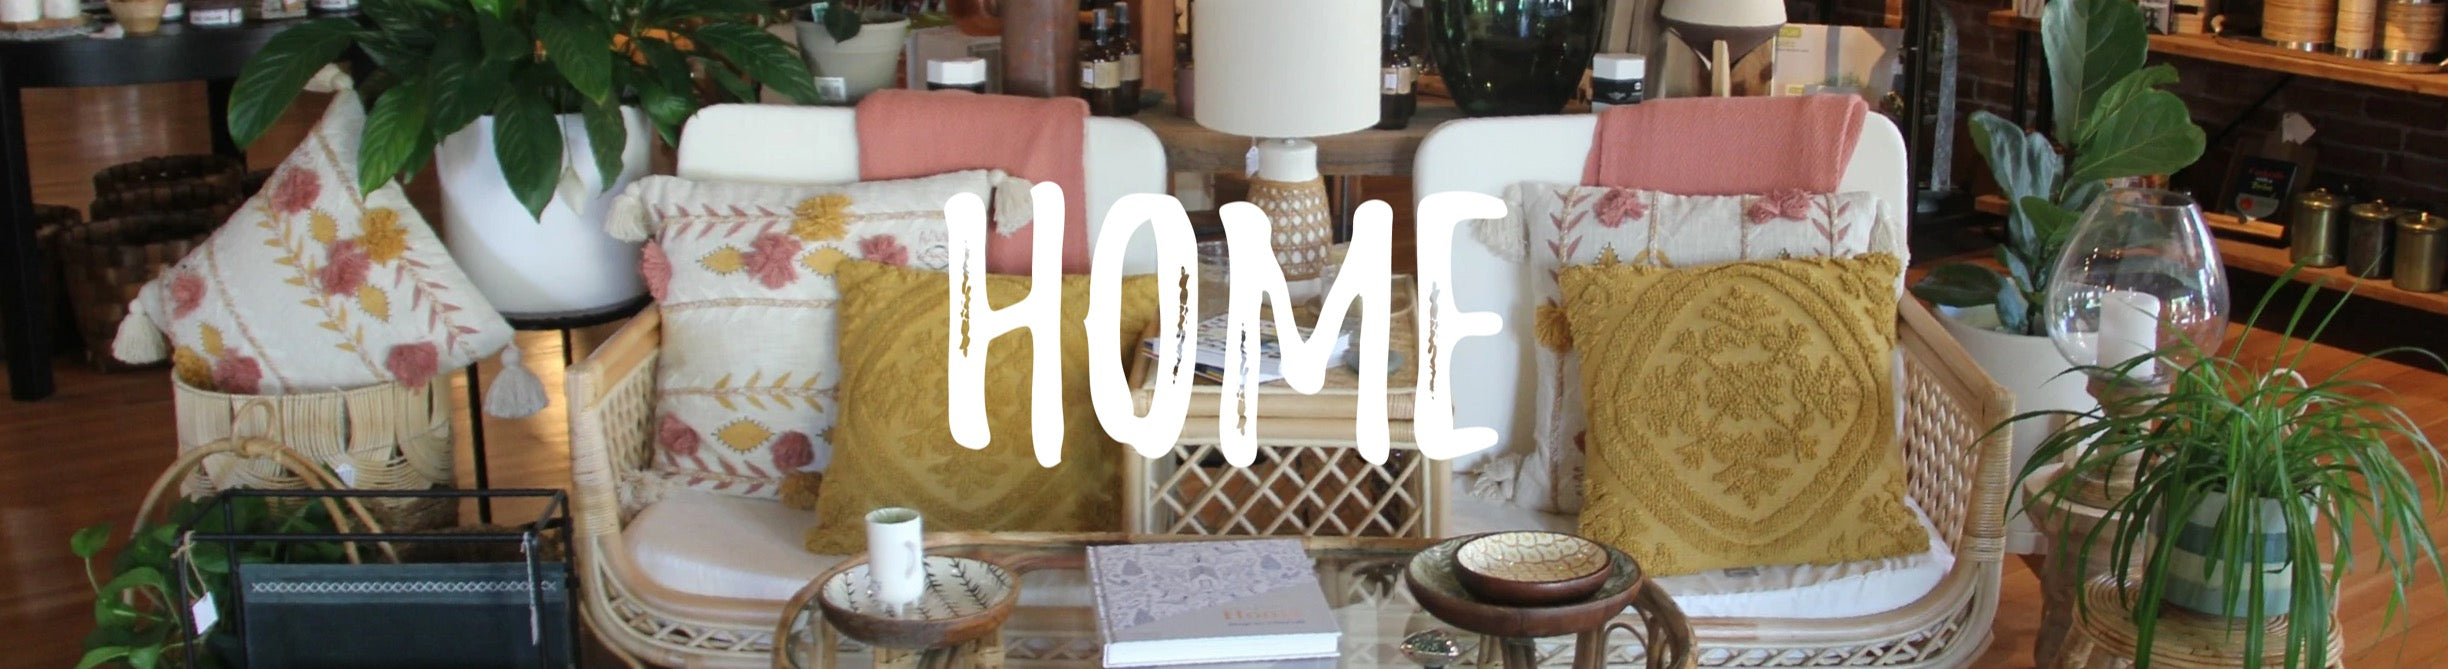 Home Store Banner